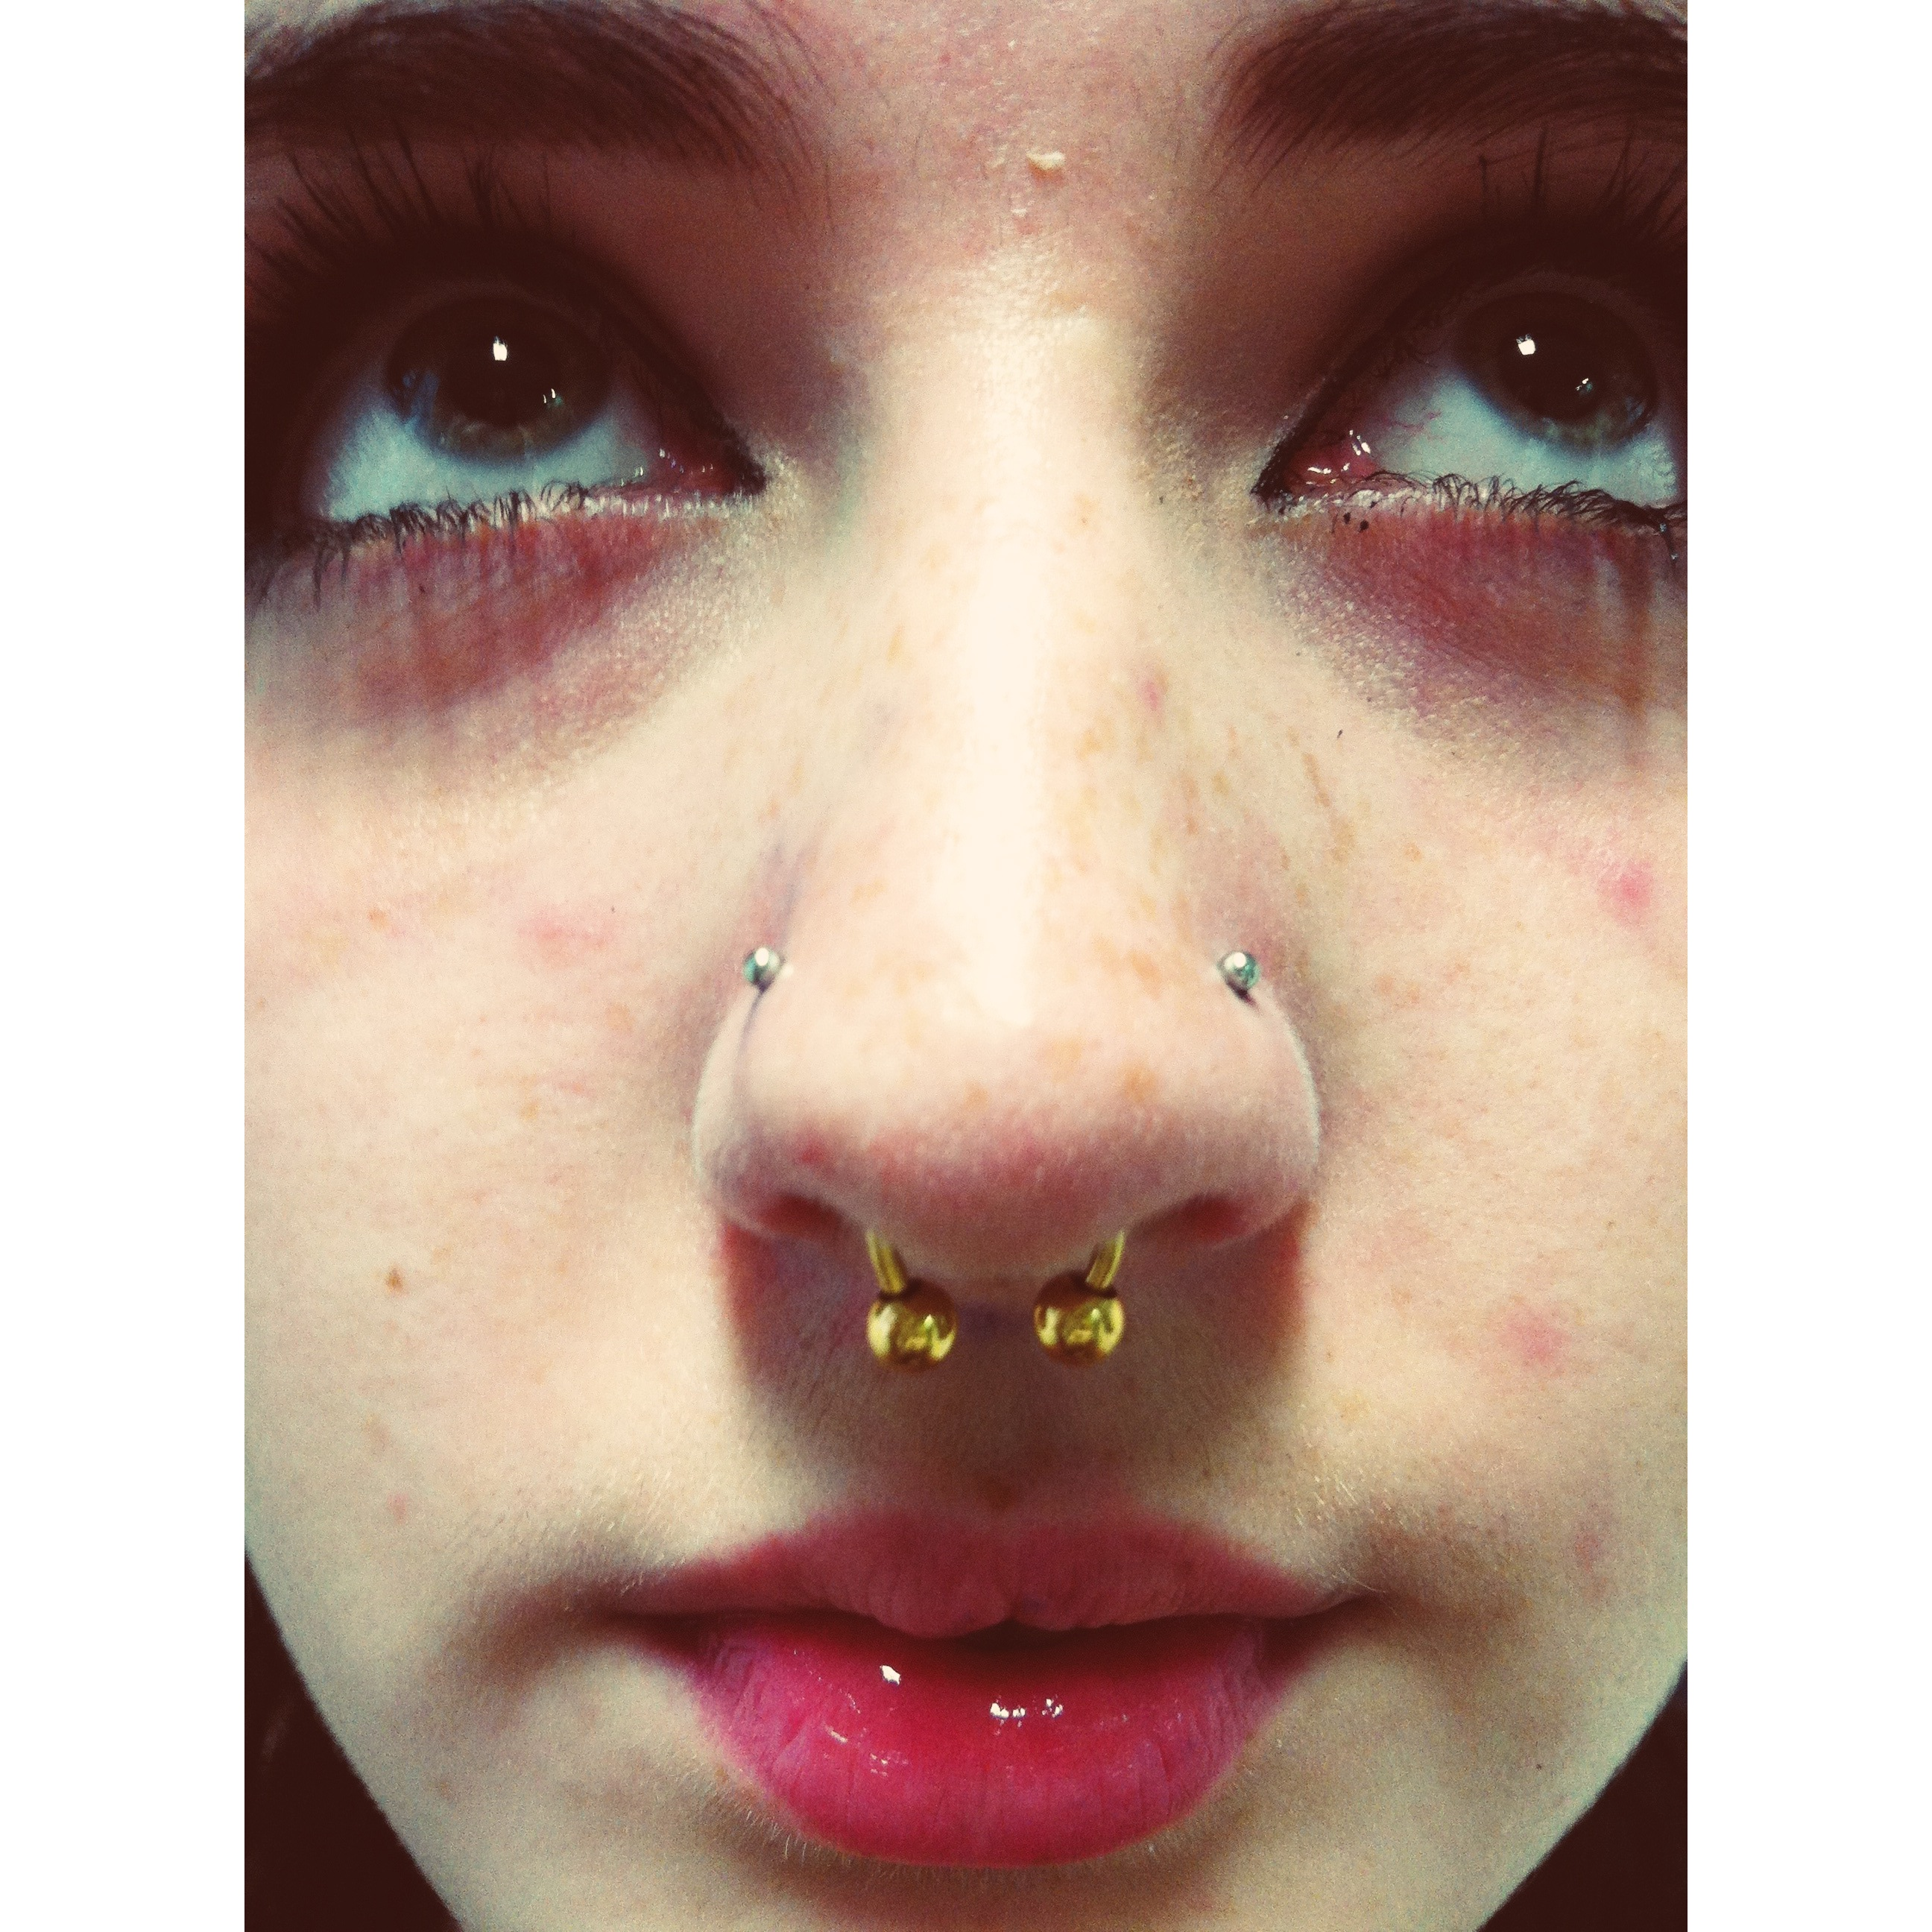 Double Nose Piercings El Capitan Body Piercer